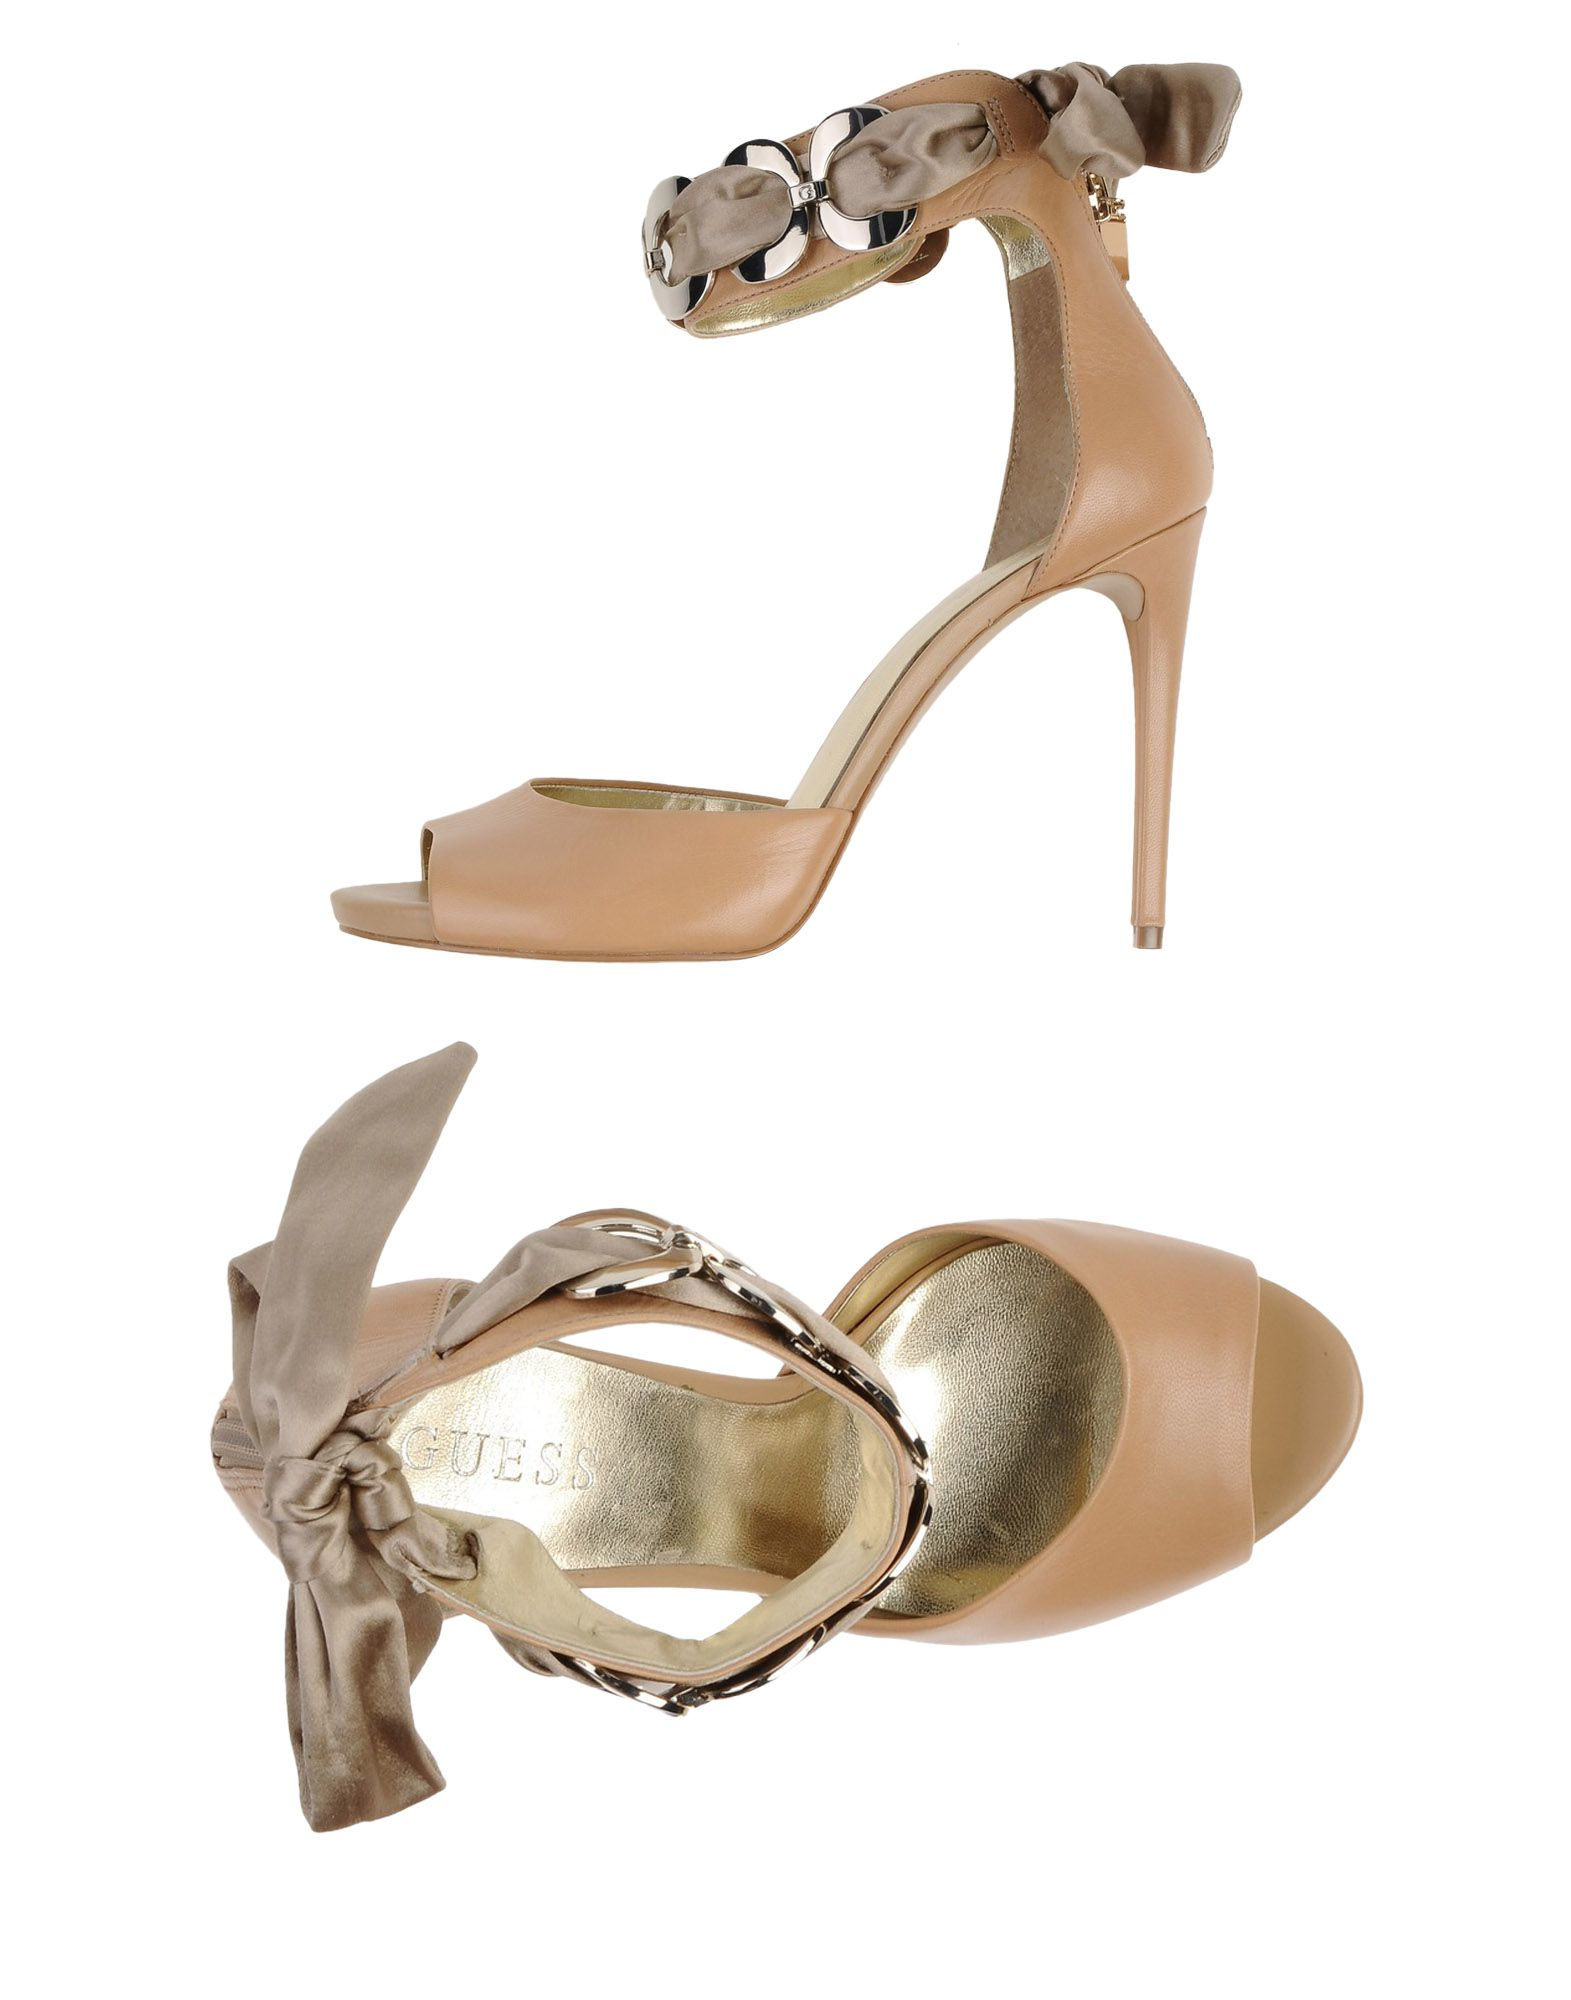 55c5cba0366ab Lyst - Guess Sandals in Natural